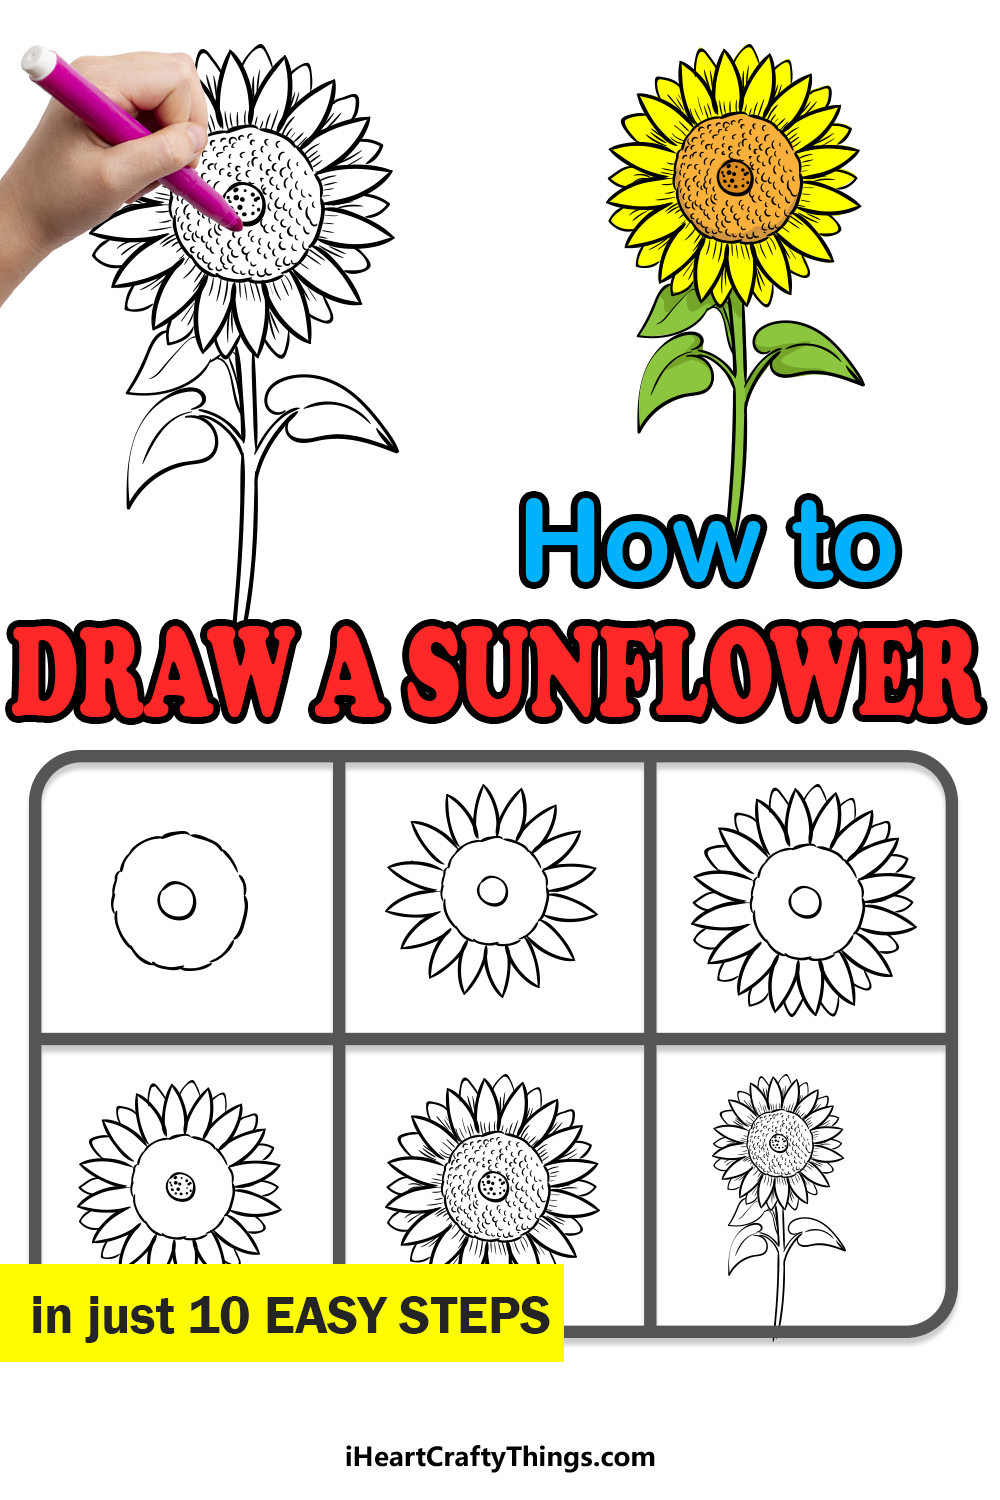 how to draw a sunflower in 10 easy steps